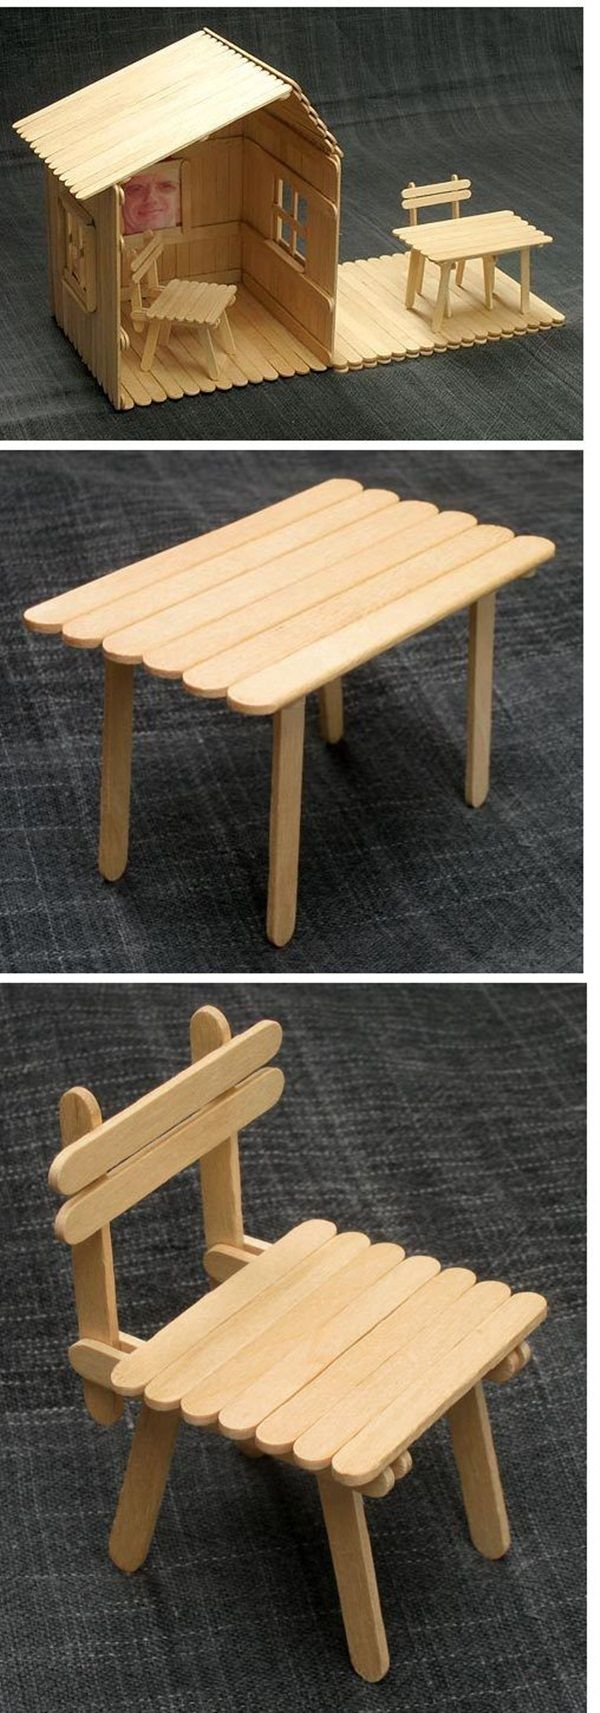 Image result for popsicle stick furniture #hausdesign